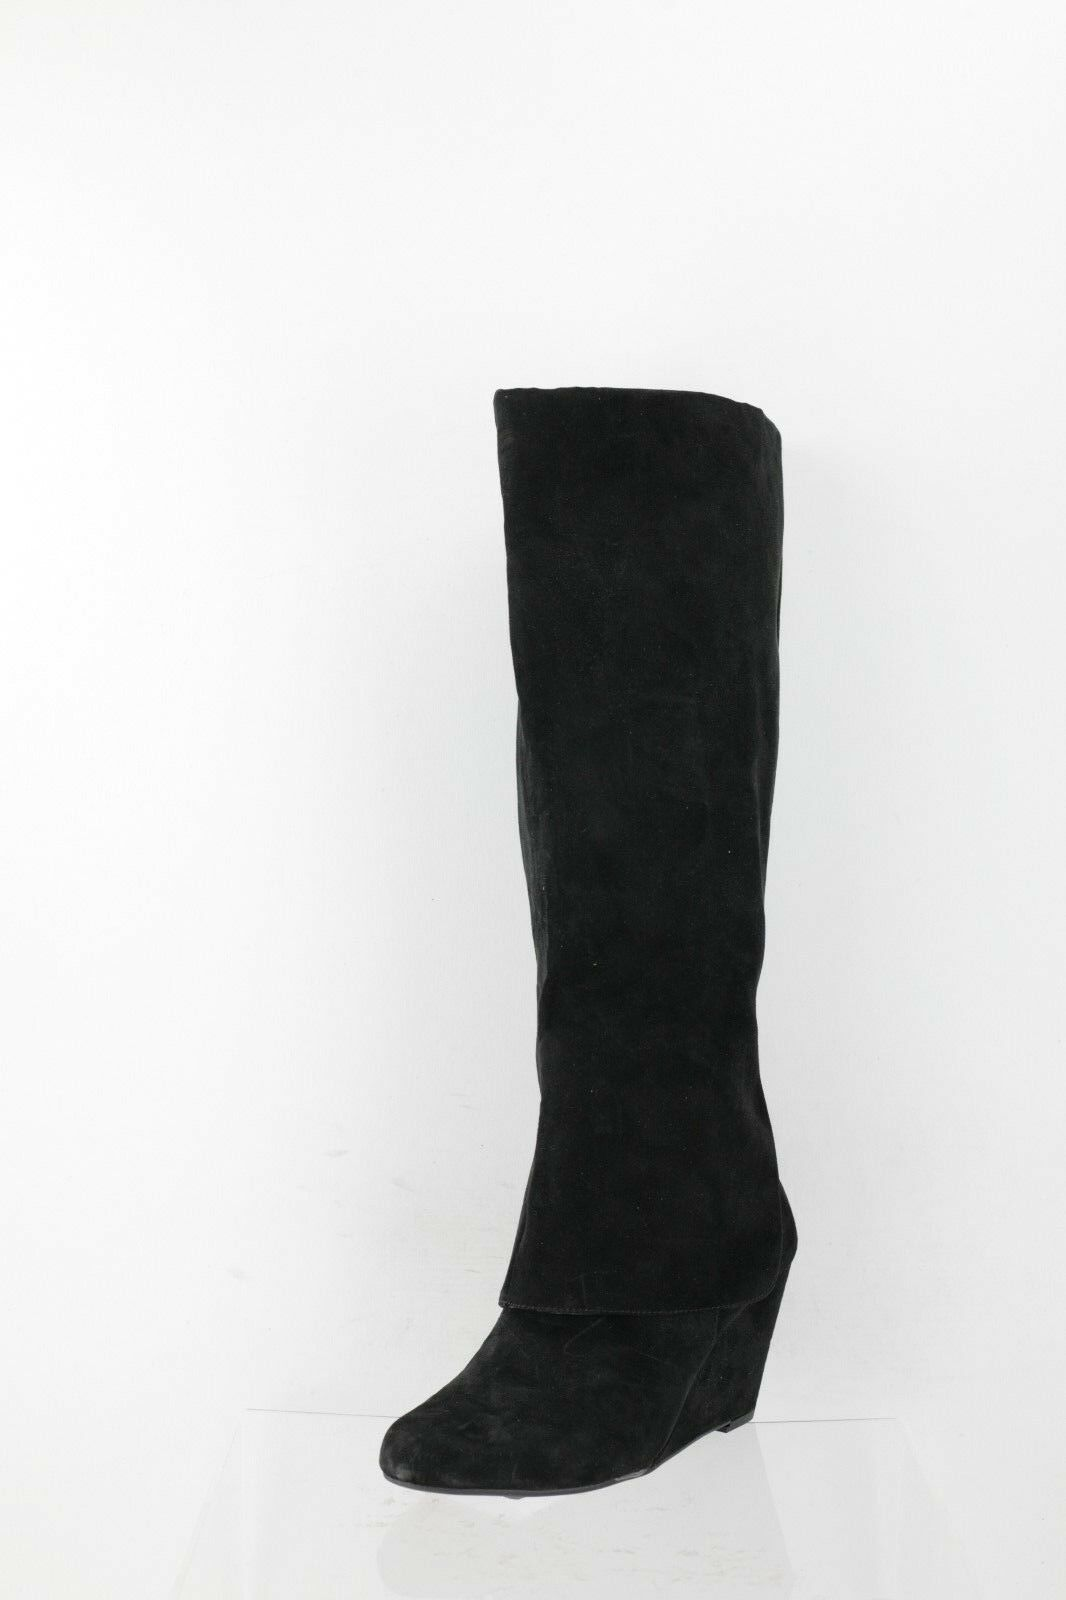 Jessica Simpson Knee Riese Black Suede Wedge Knee Simpson High Boots Women's Shoes Size 6.5 M 00c218